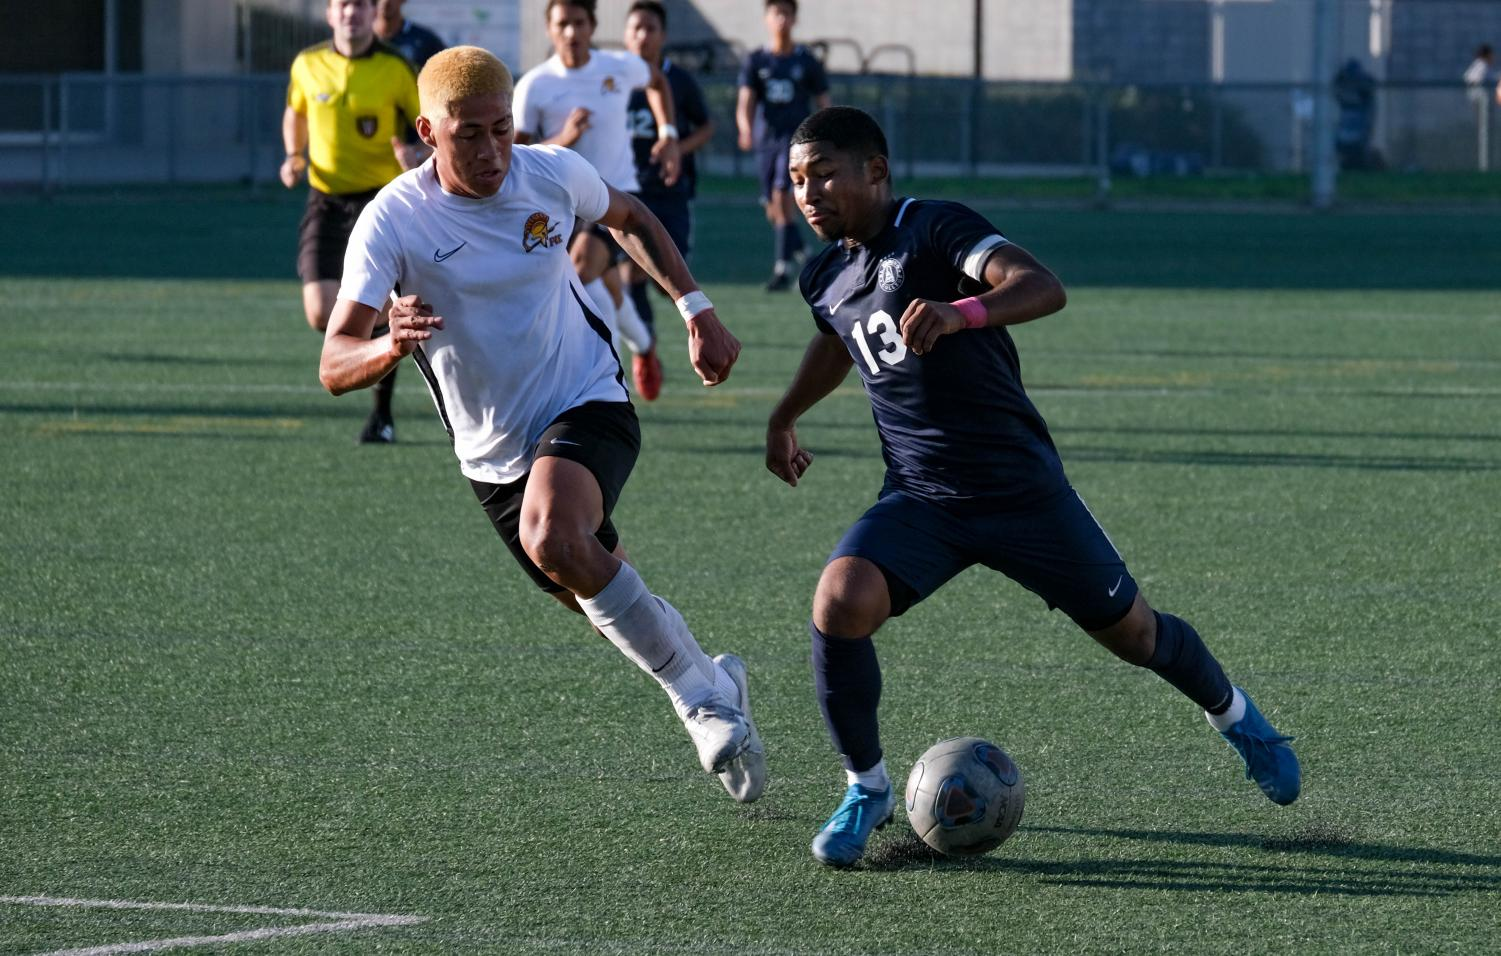 El Camino College men's soccer midfielder Melvyn Perez -Cortez moves the ball past a Pasadena College defender during a home game at the ECC Field on Tuesday, Oct. 29. The Warriors won 2-0. David Odusanya/The Union